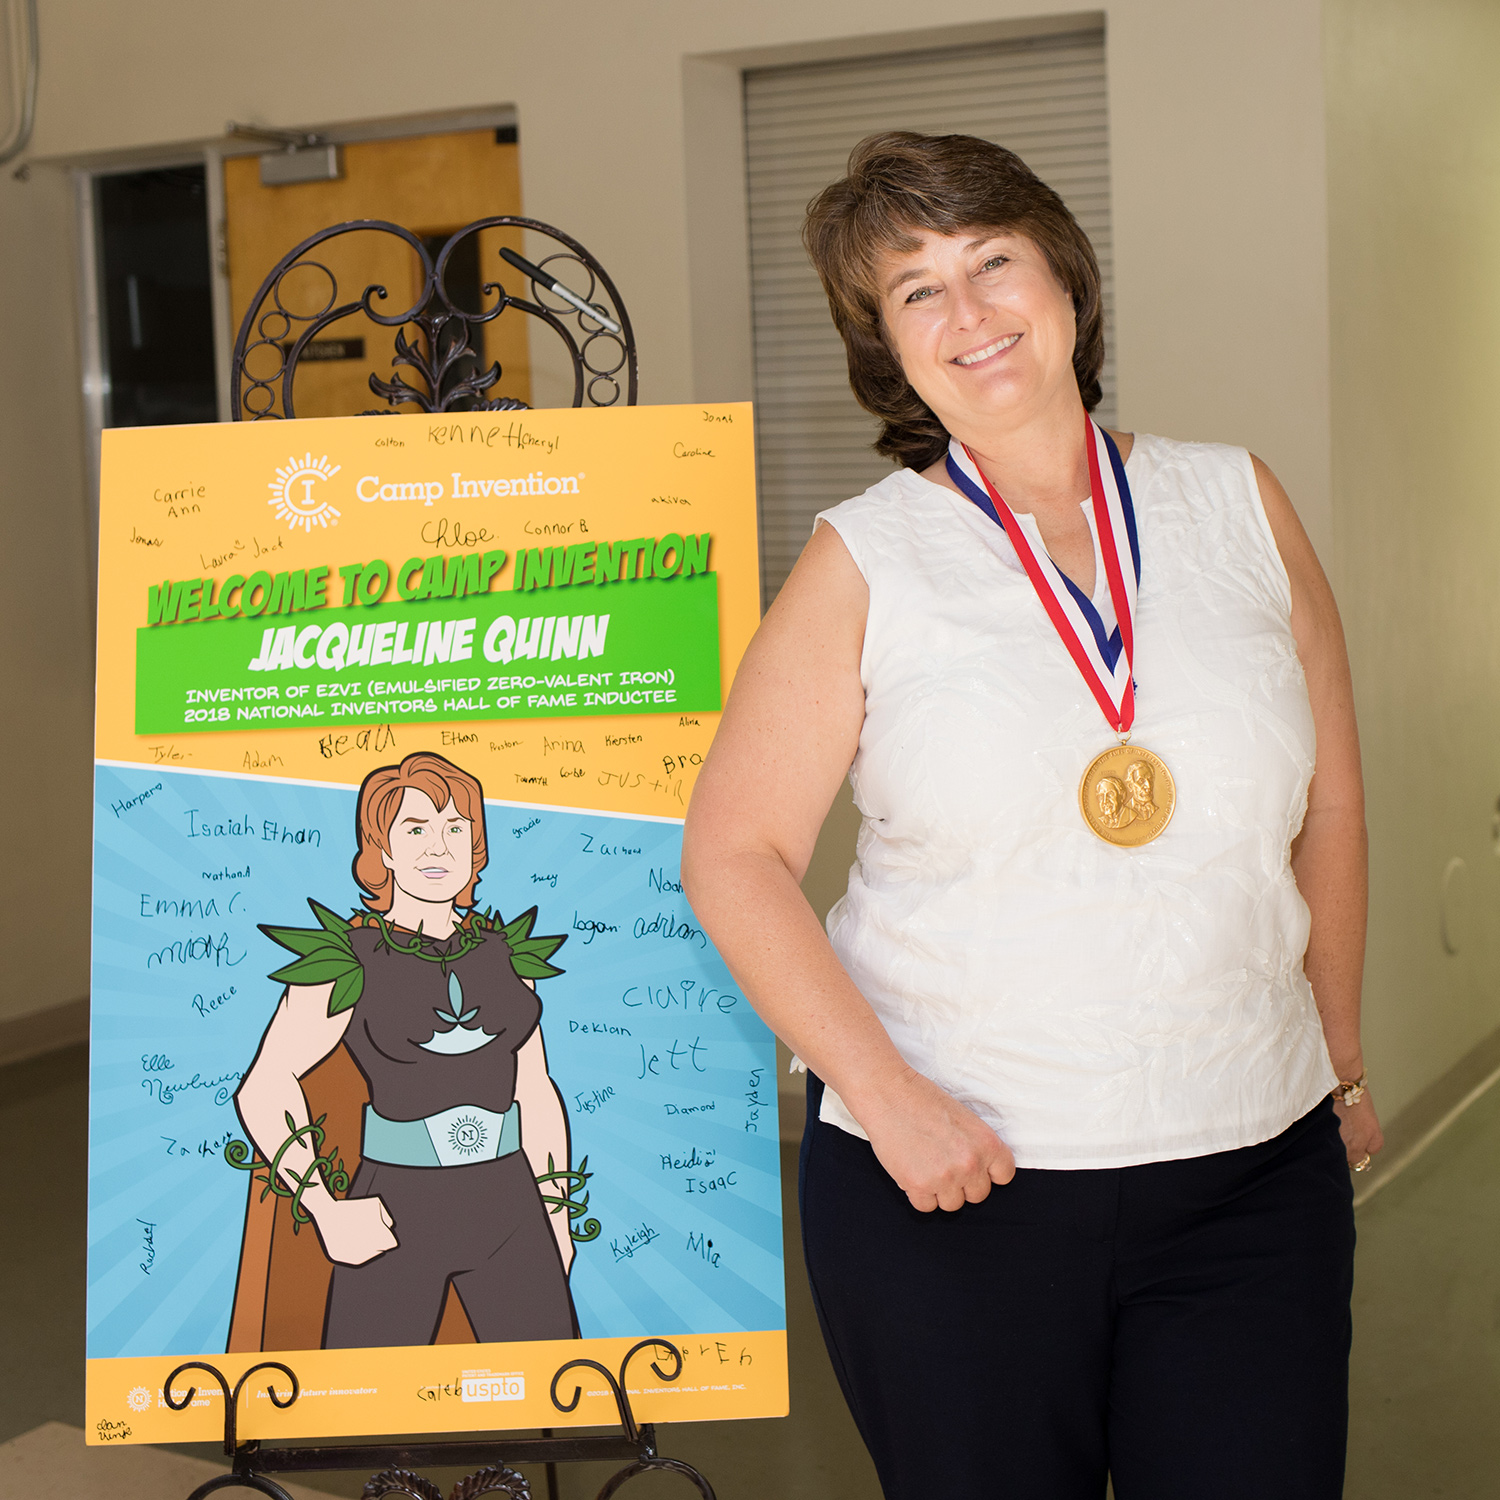 Jackie Quinn poses with her Camp Invention poster, autographed by campers